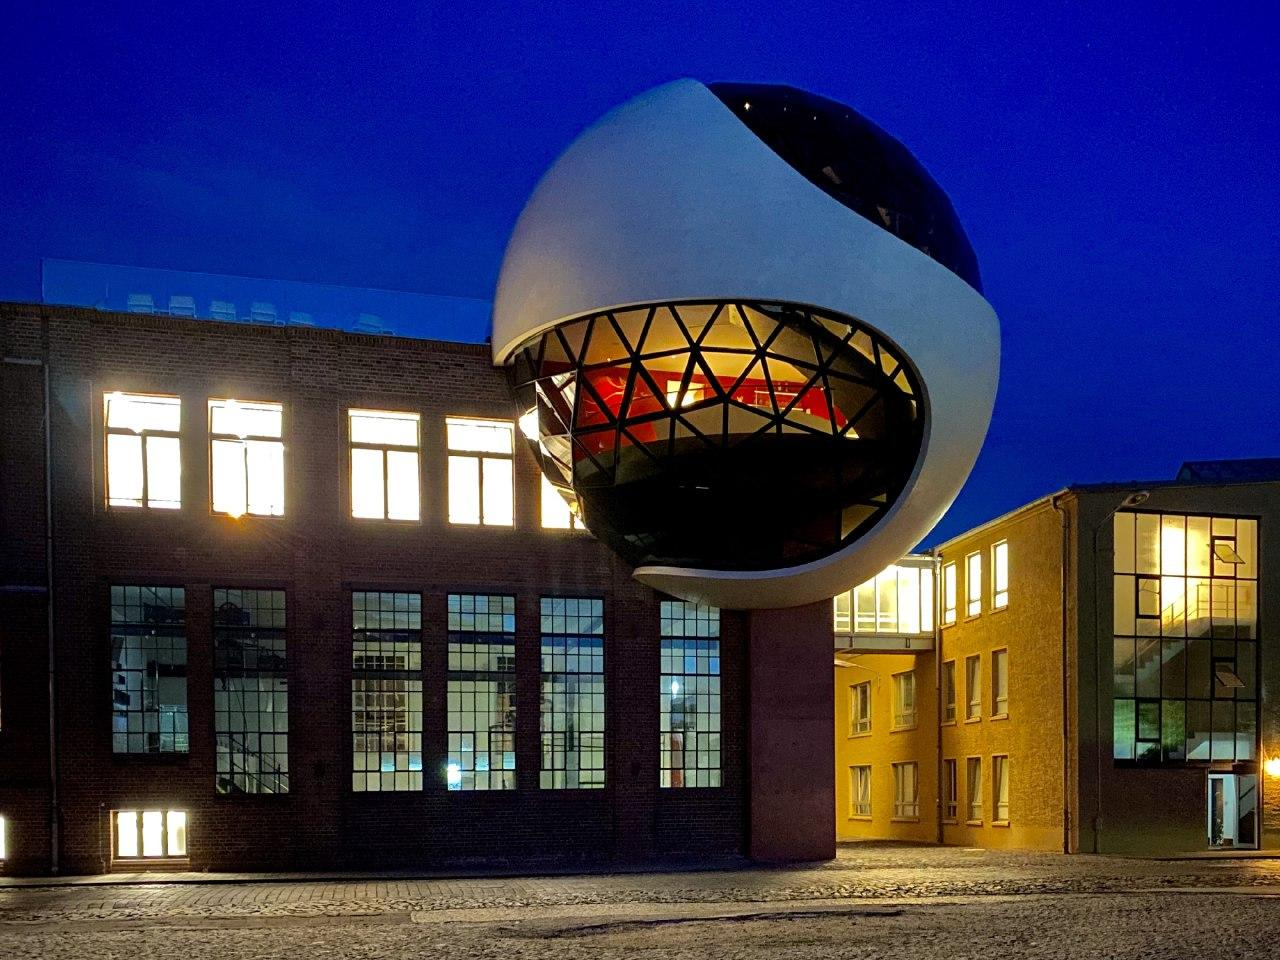 An Oscar Niemeyer-Designed White Concrete and Glazed Sphere, Generates Extension for a Factory Canteen in Germany